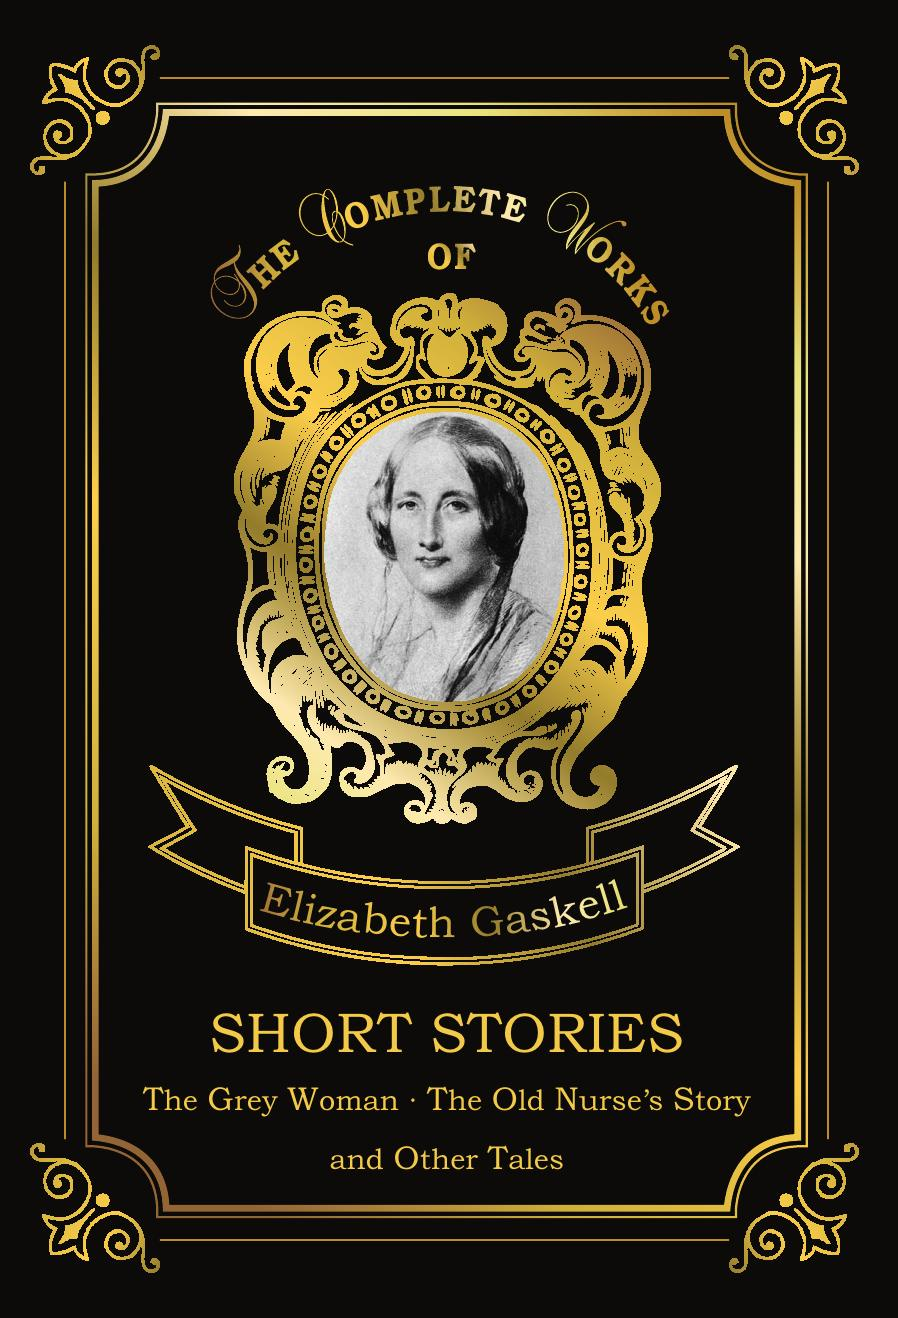 Gaskell E.C. Short Stories e c gaskell short stories the old nurse s story and other tales